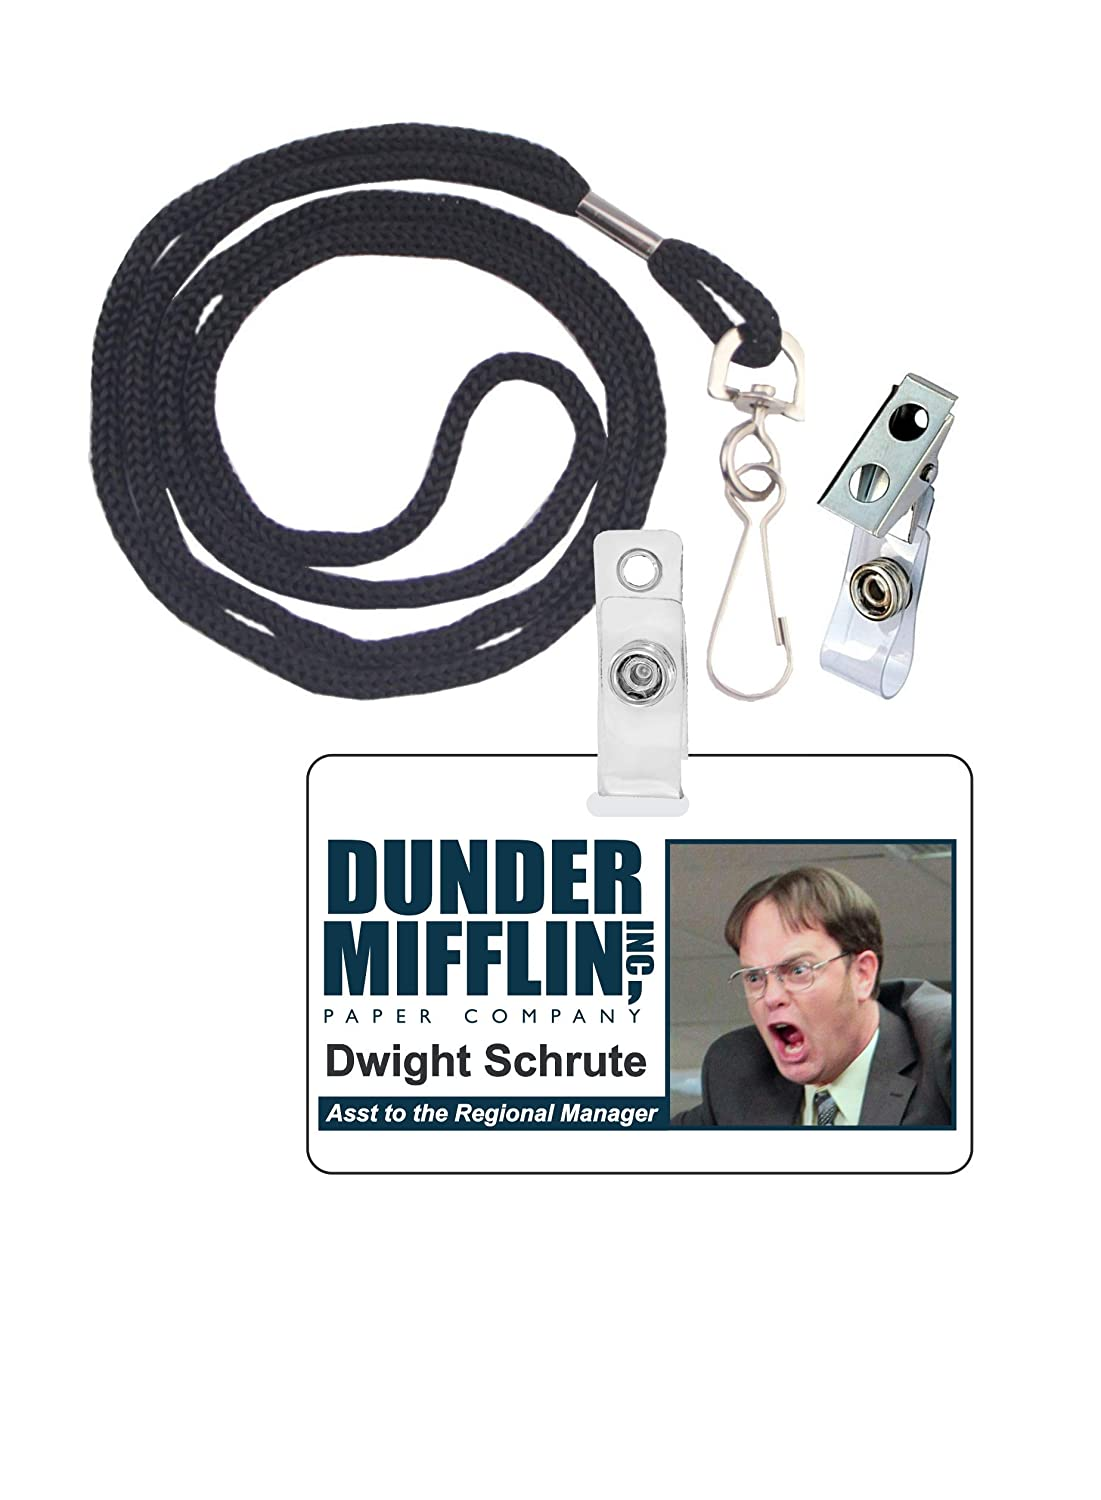 photo about Dwight Schrute Id Badge Printable identify Dwight Schrute The Office environment Novelty Identity Badge Motion picture Prop for Gown and Cosplay Halloween and Get together Extras